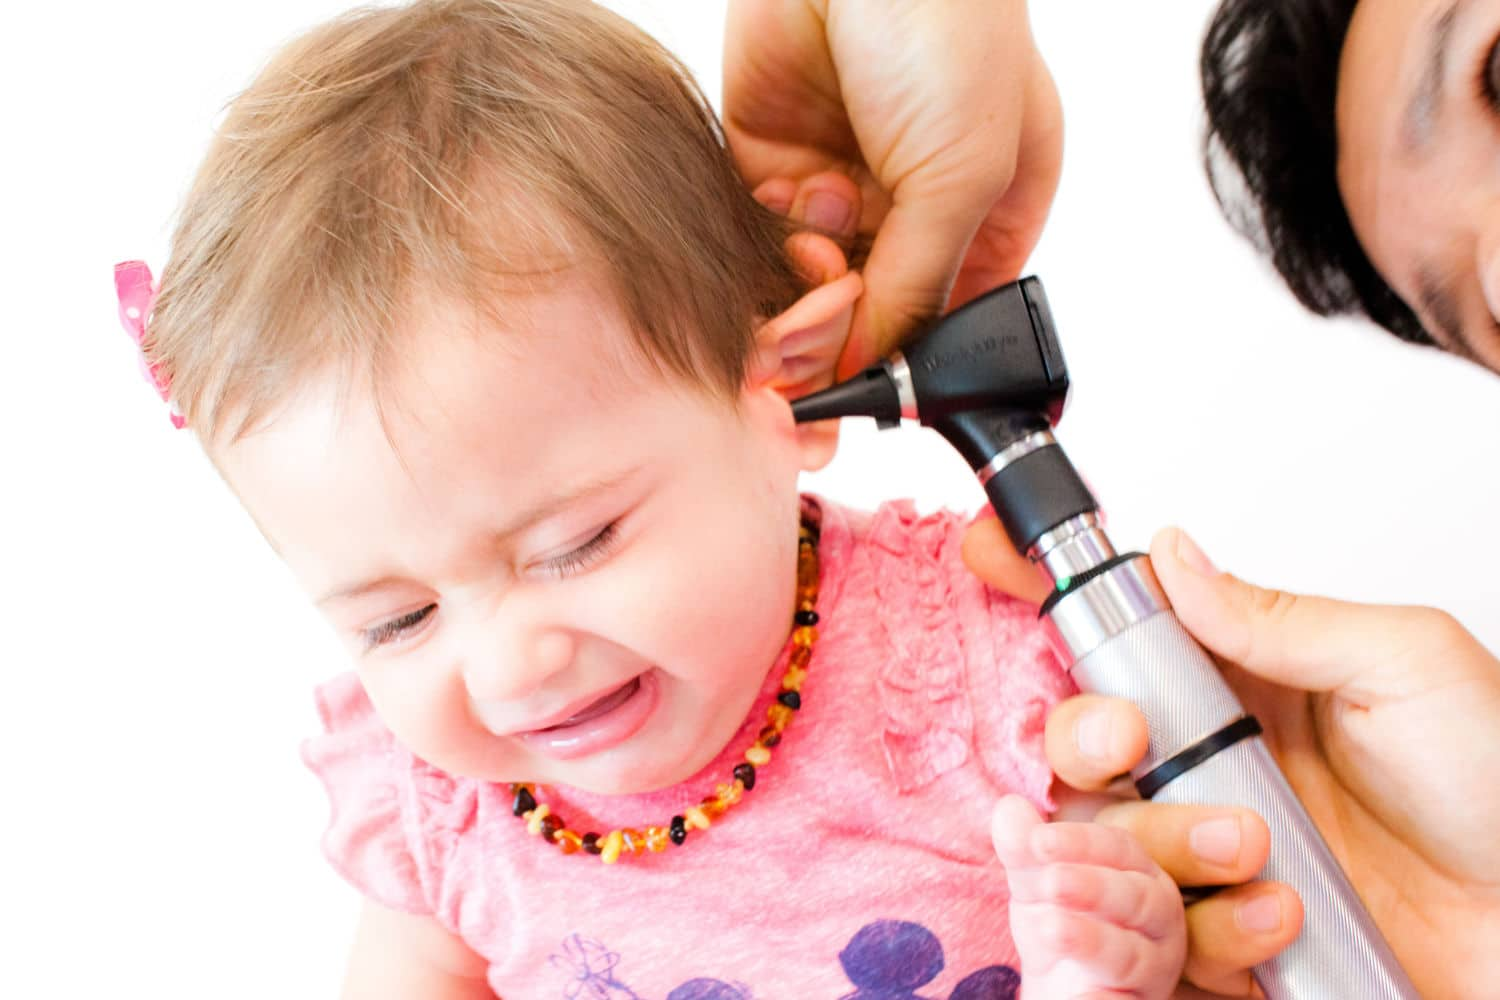 10 Common Ear Problems And What You Can Do About Them